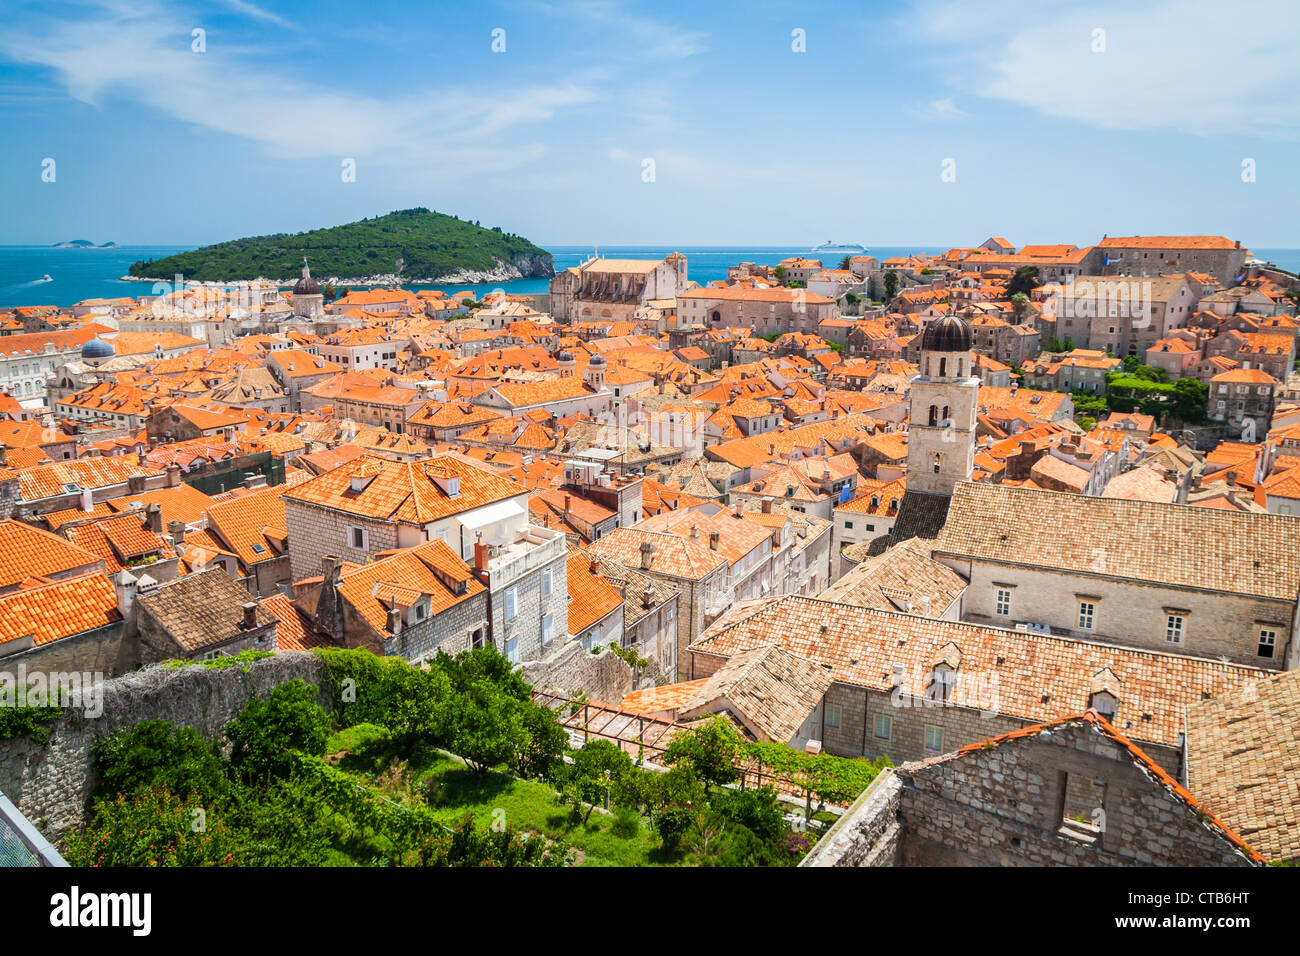 Roofs of Dubrovnik's Old Town - Stock Image